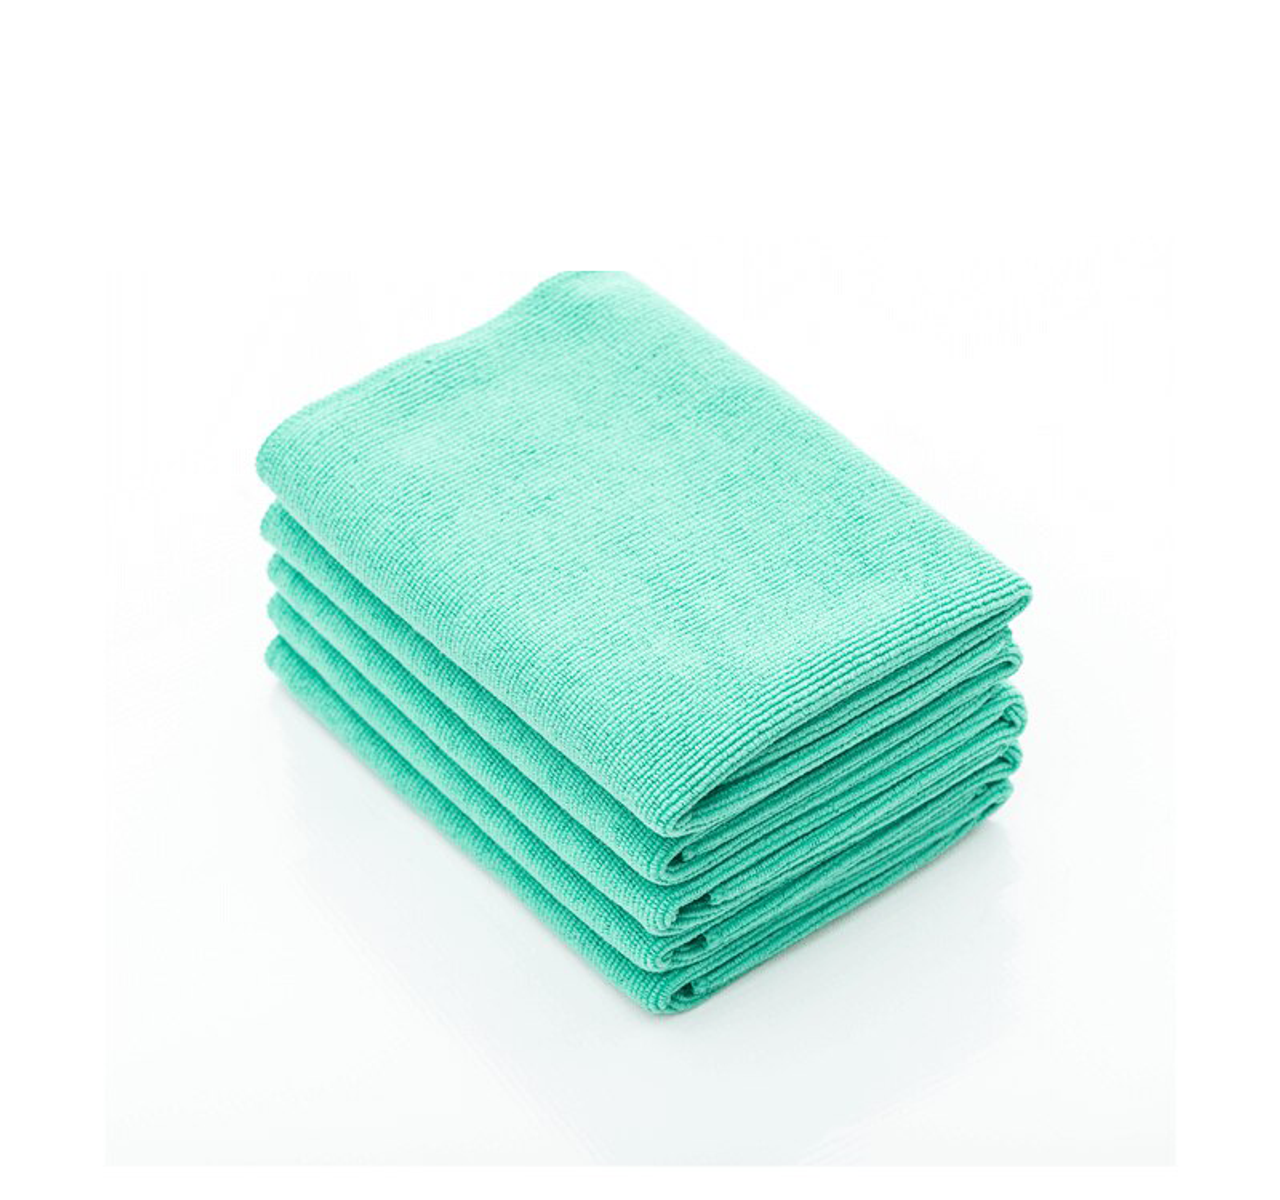 The Rag Company 16 in x 16 in 16x16, Green The Pearl Professional Microfiber Ceramic Coating//Sealant//Interior Detailing Towels 320gsm Pearl-Weave 5-Pack